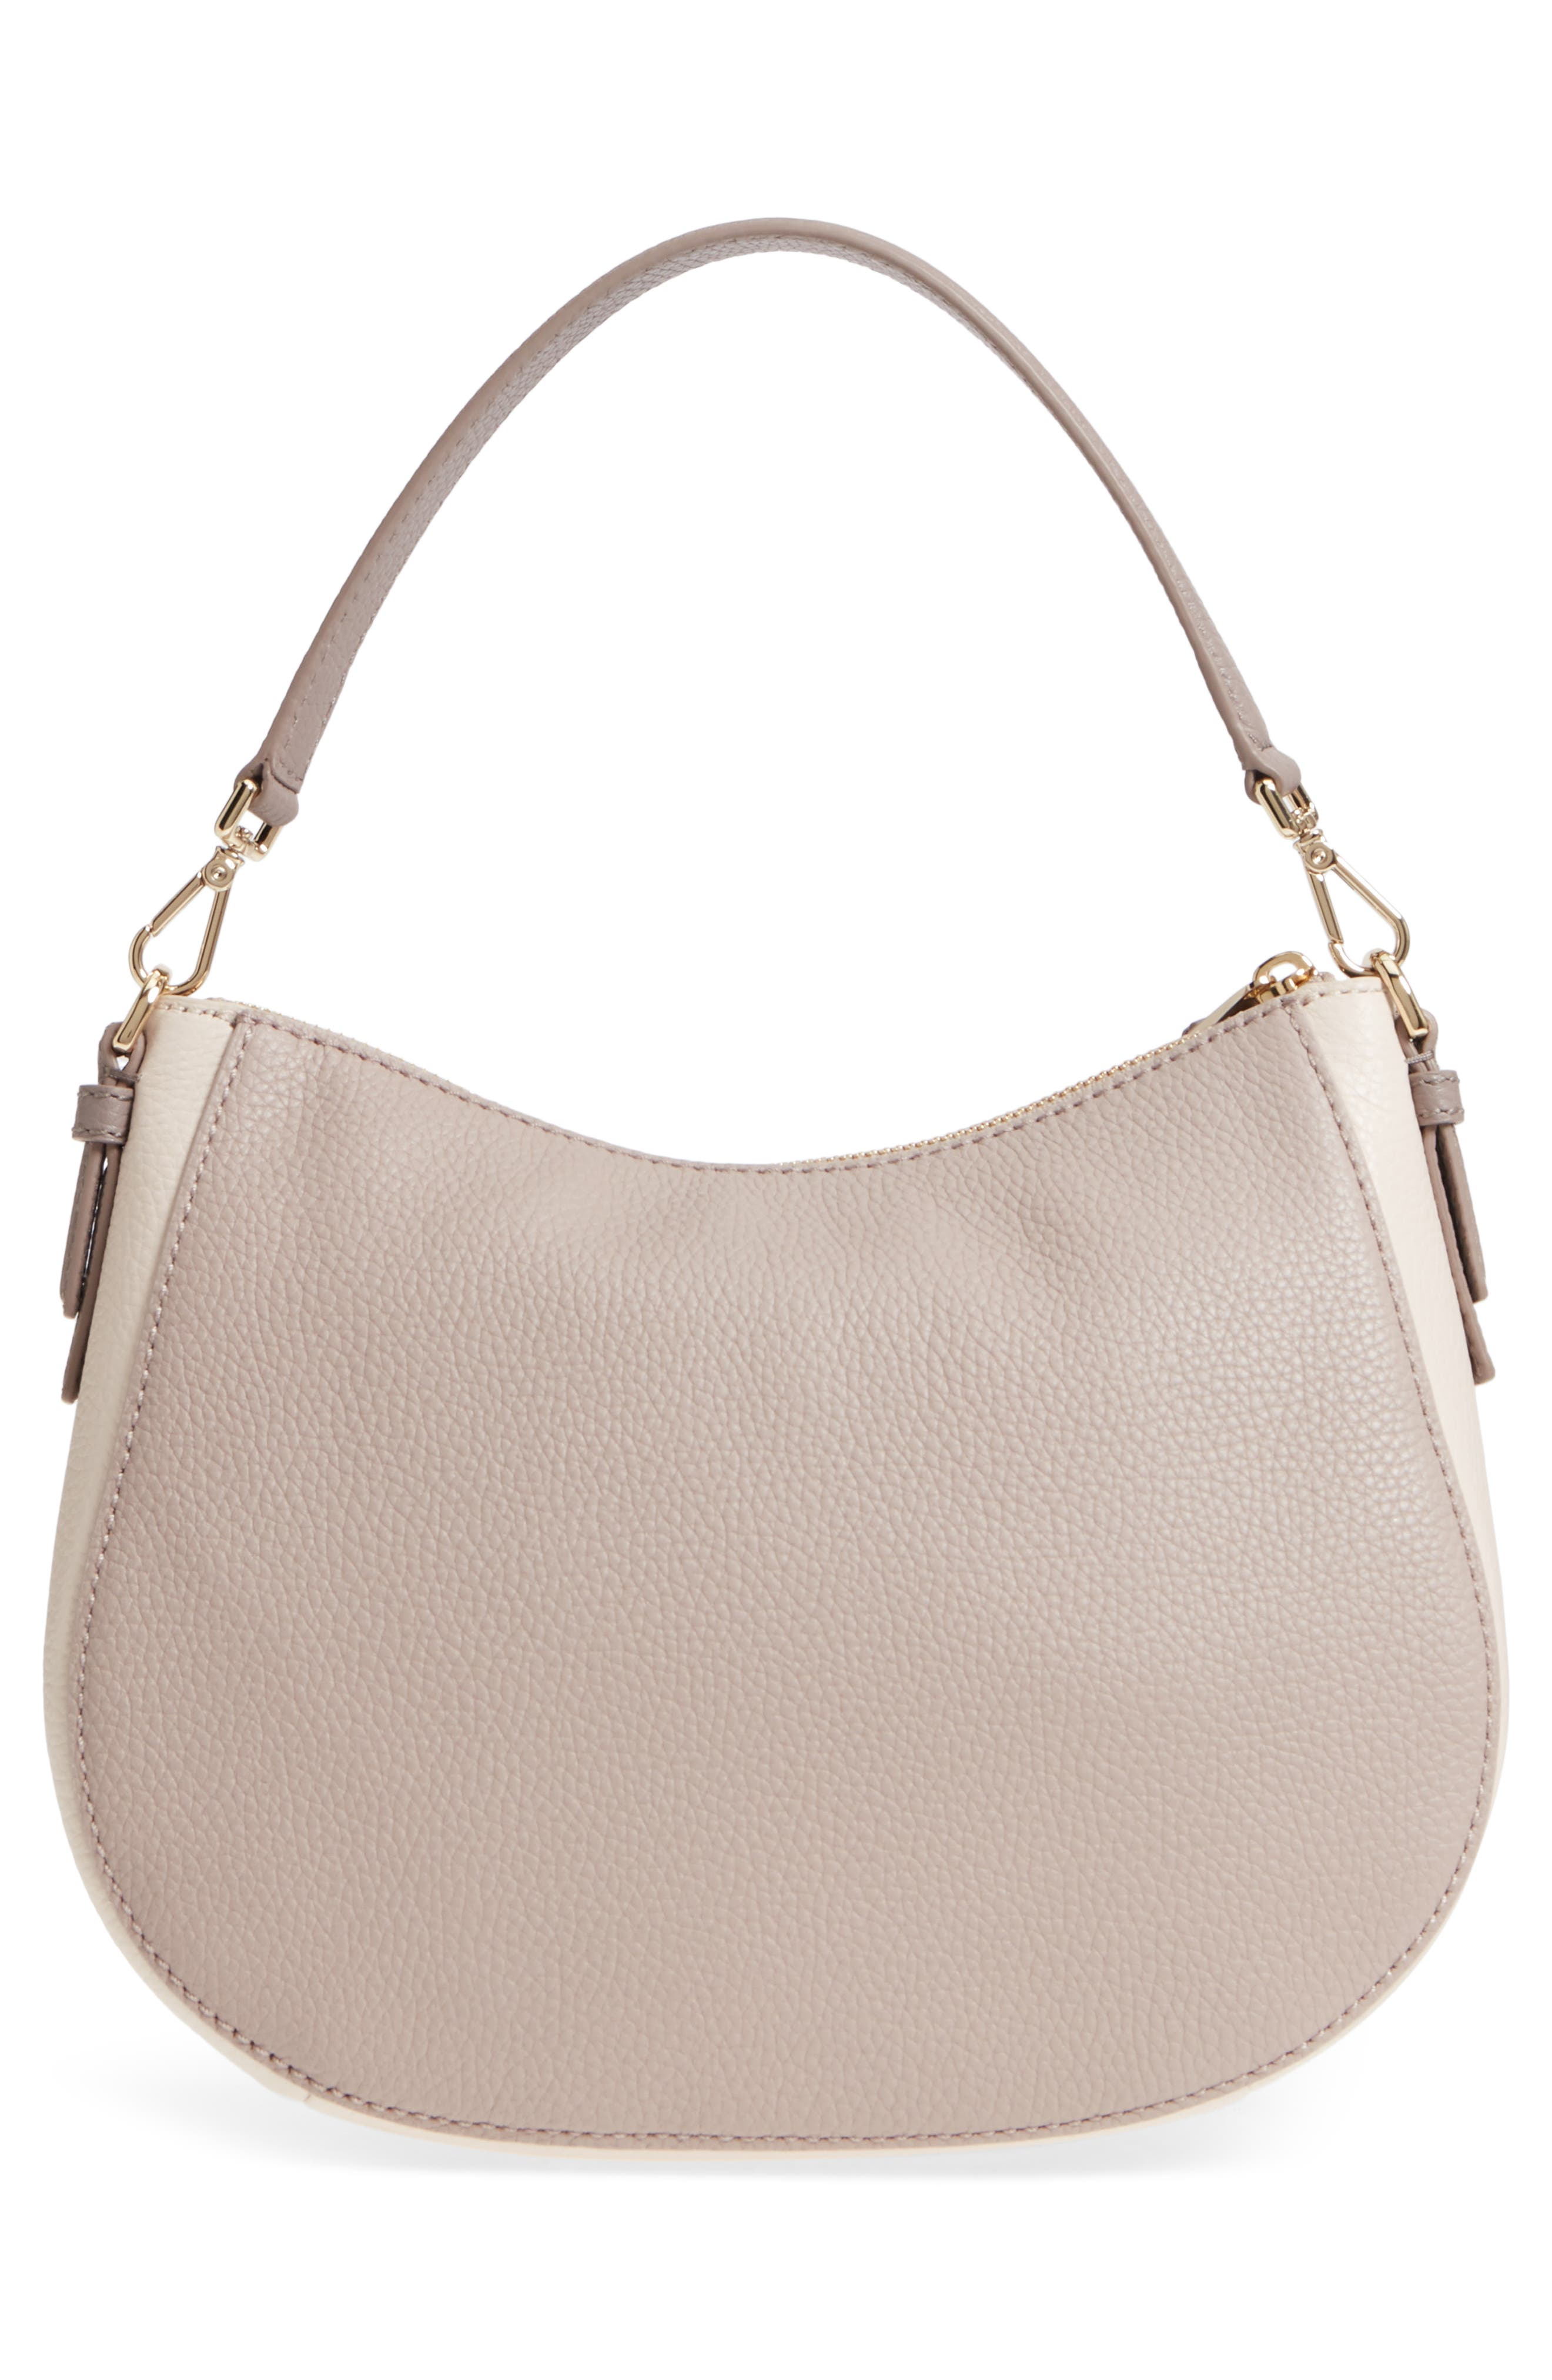 jackson street small mylie leather hobo,                             Alternate thumbnail 4, color,                             100